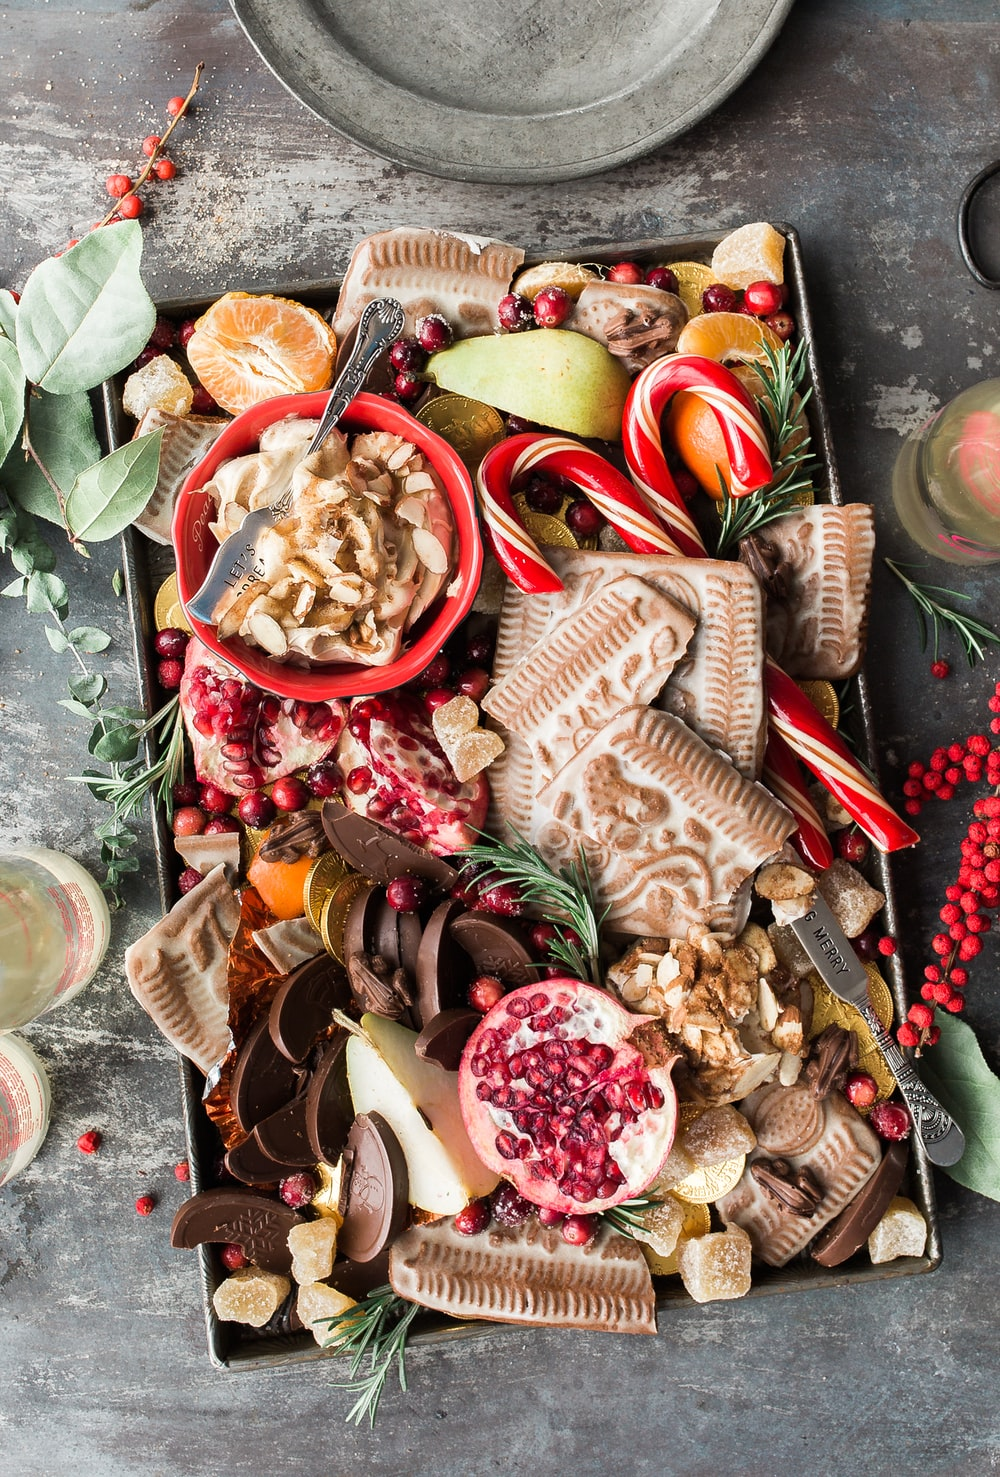 variety of sliced fruits, cookies, and chocolates on gray steel tray